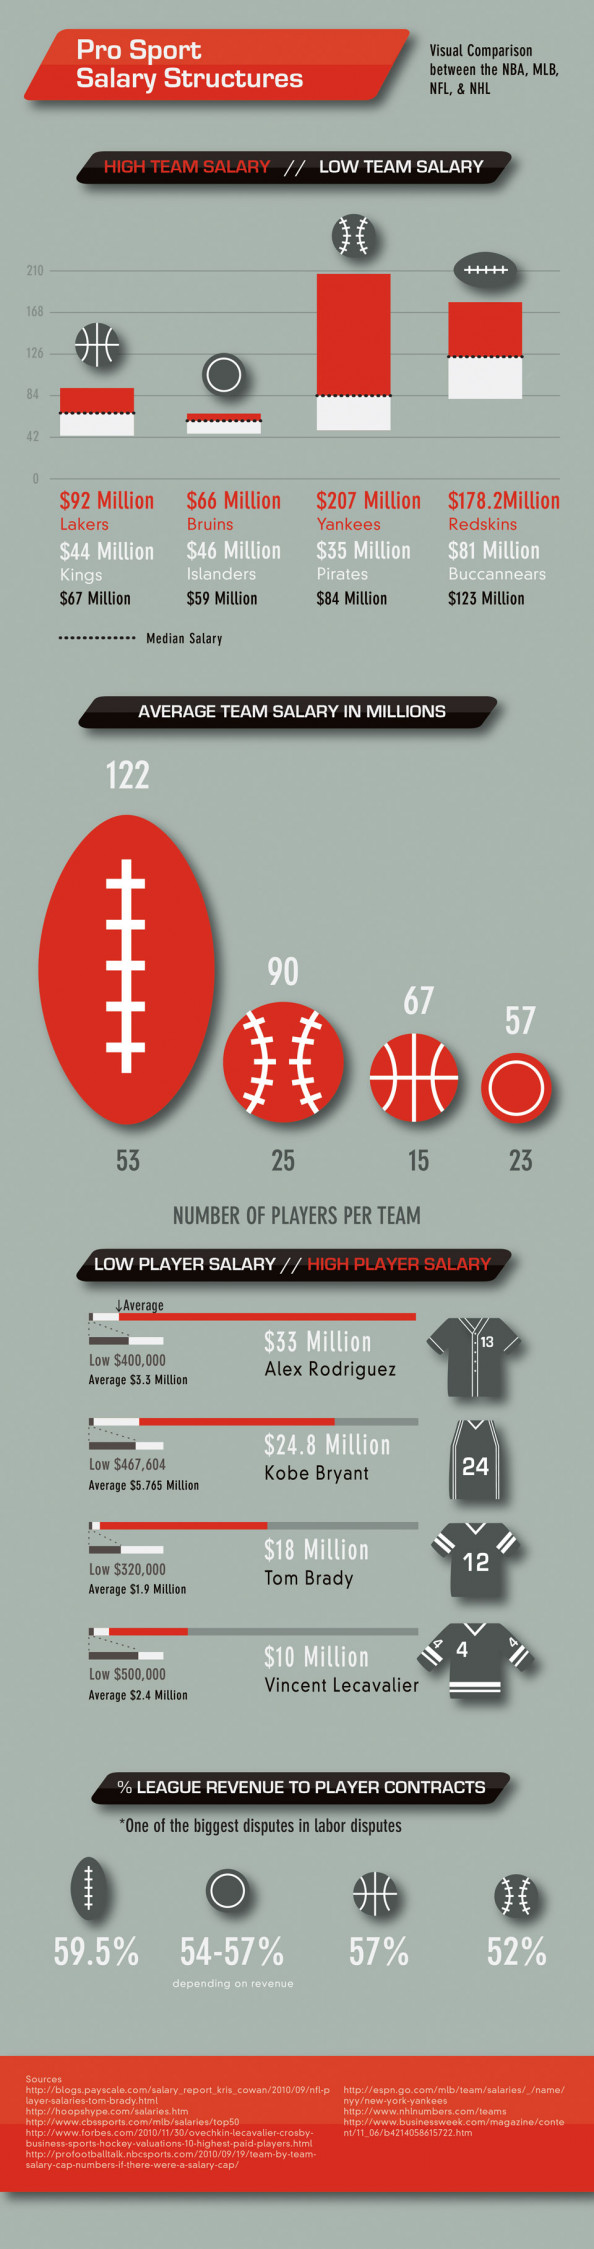 NFL, NBA, and Major League Salaries 2011 Infographic